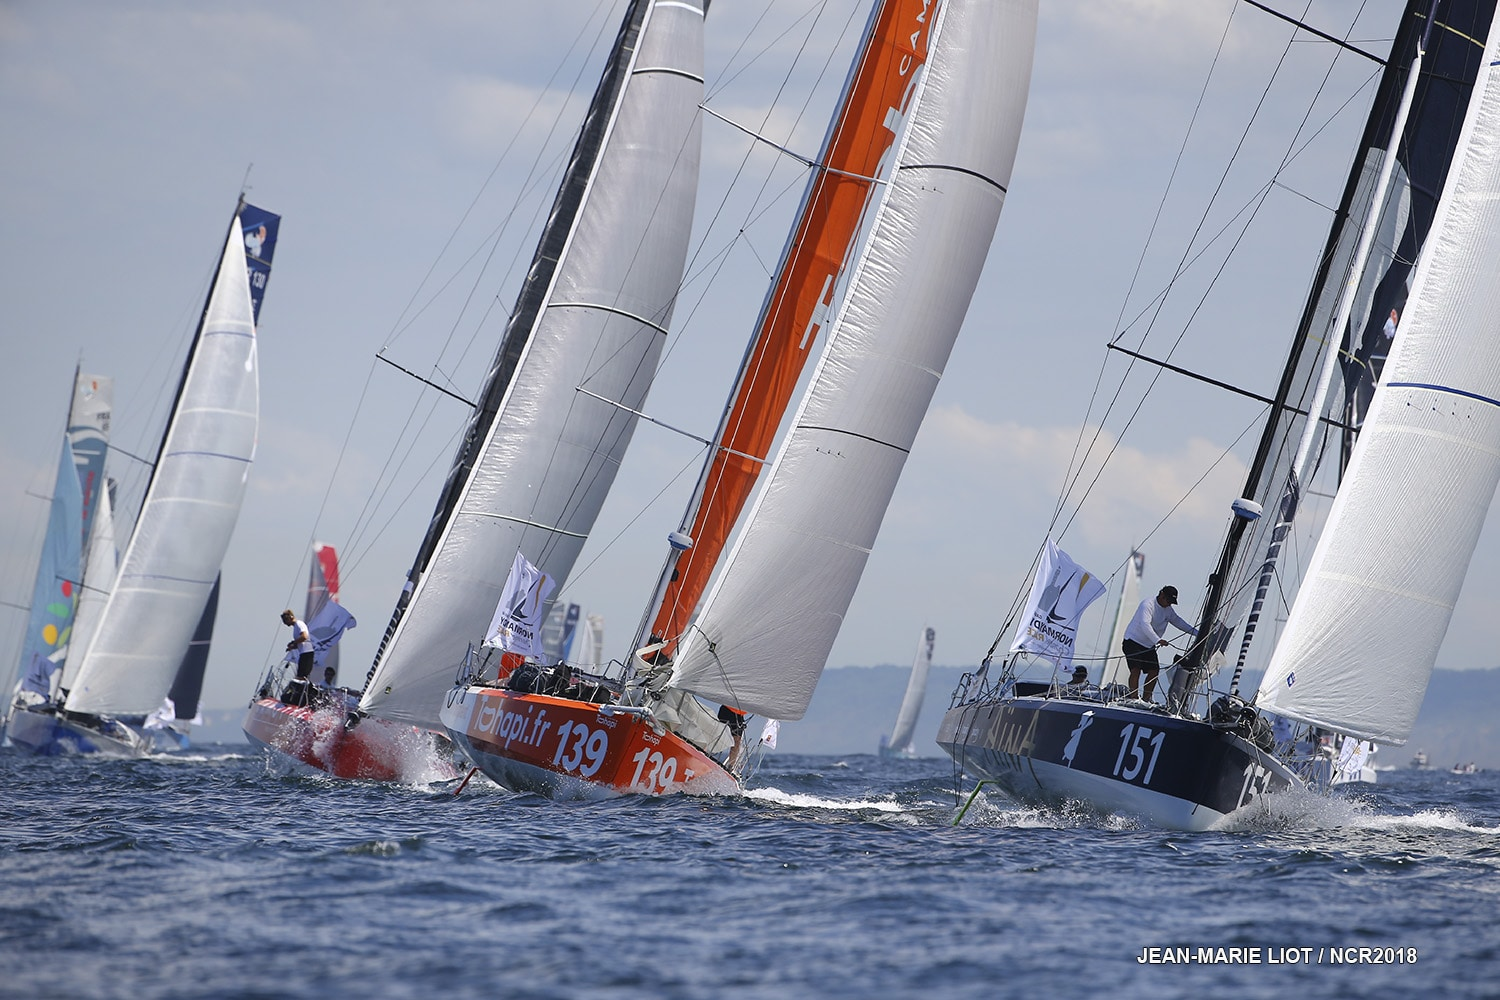 2018, NORMANDY CHANNEL RACE, NCR 2018, CLASS 40, DOUBLE HANDED, DOUBLE, depart